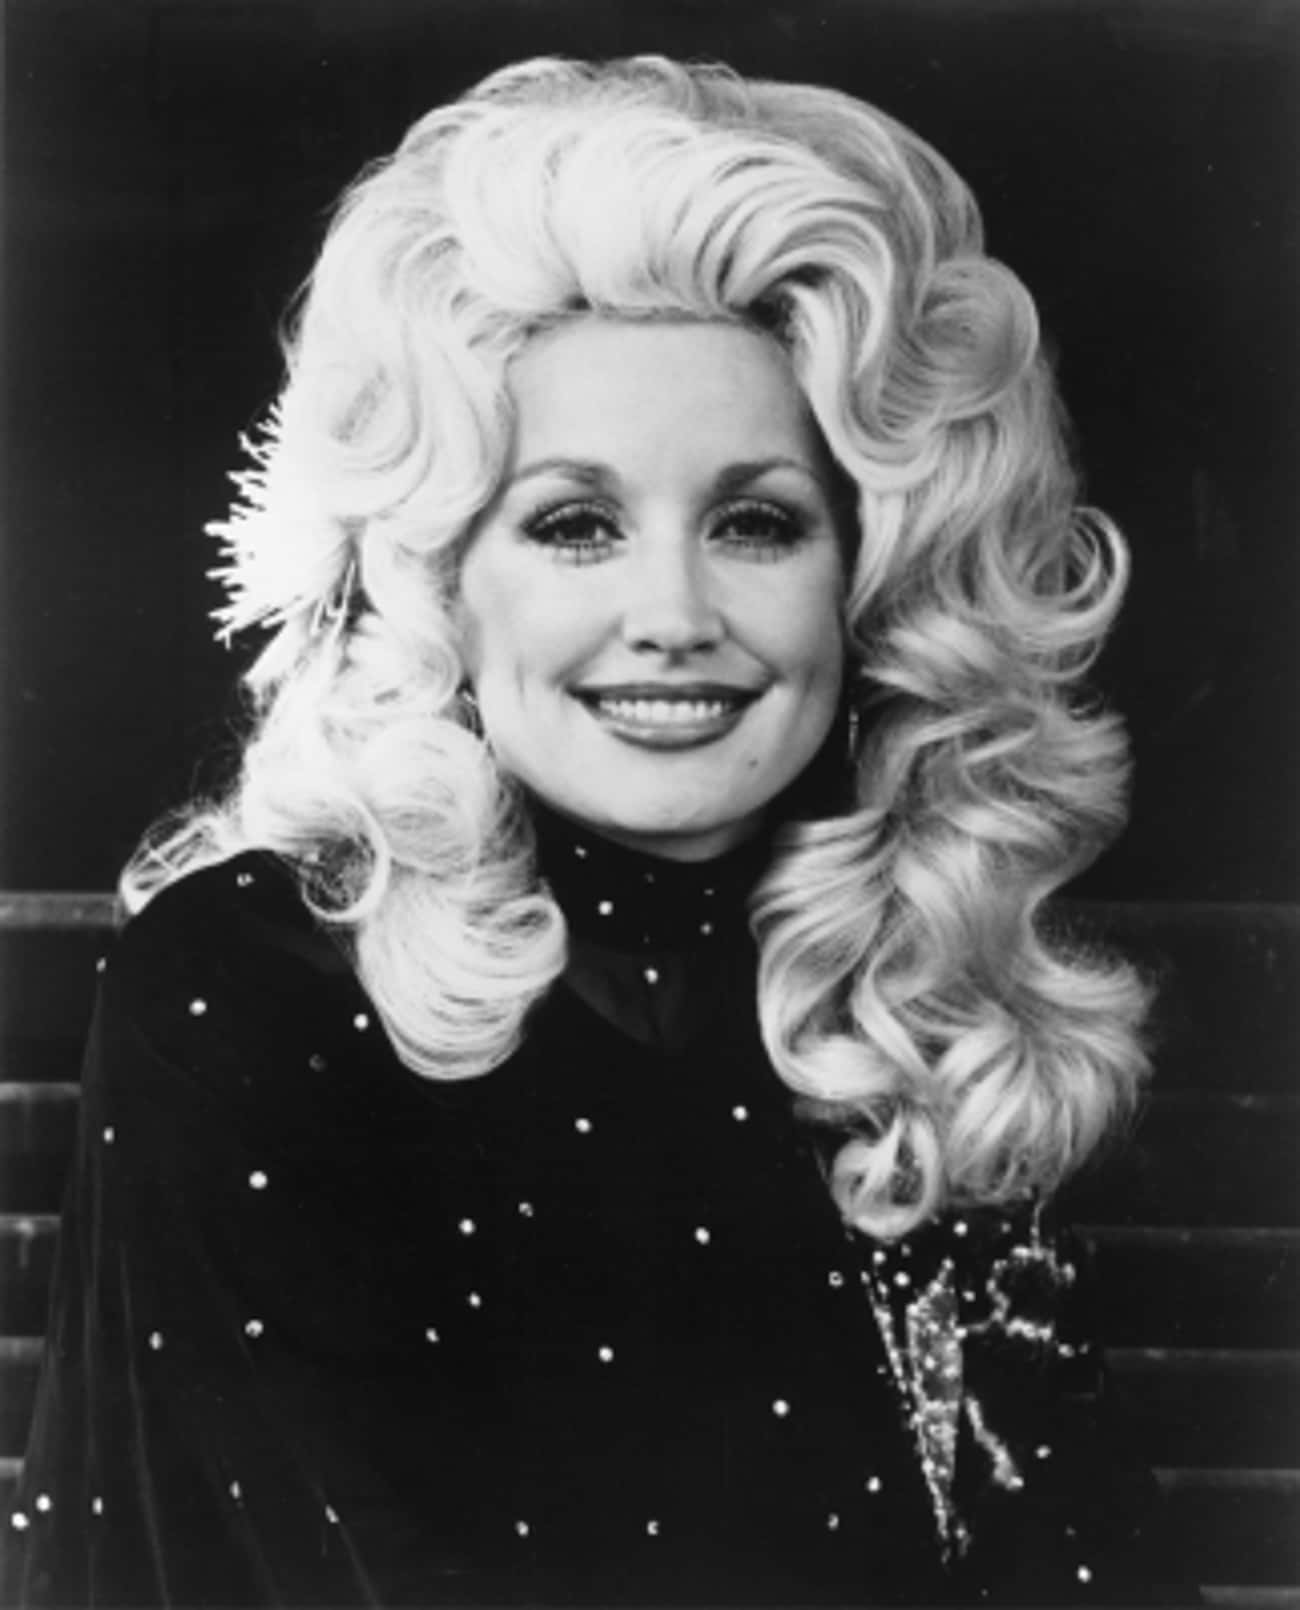 Young Dolly Bedazzled is listed (or ranked) 3 on the list Pictures Of Young Dolly Parton